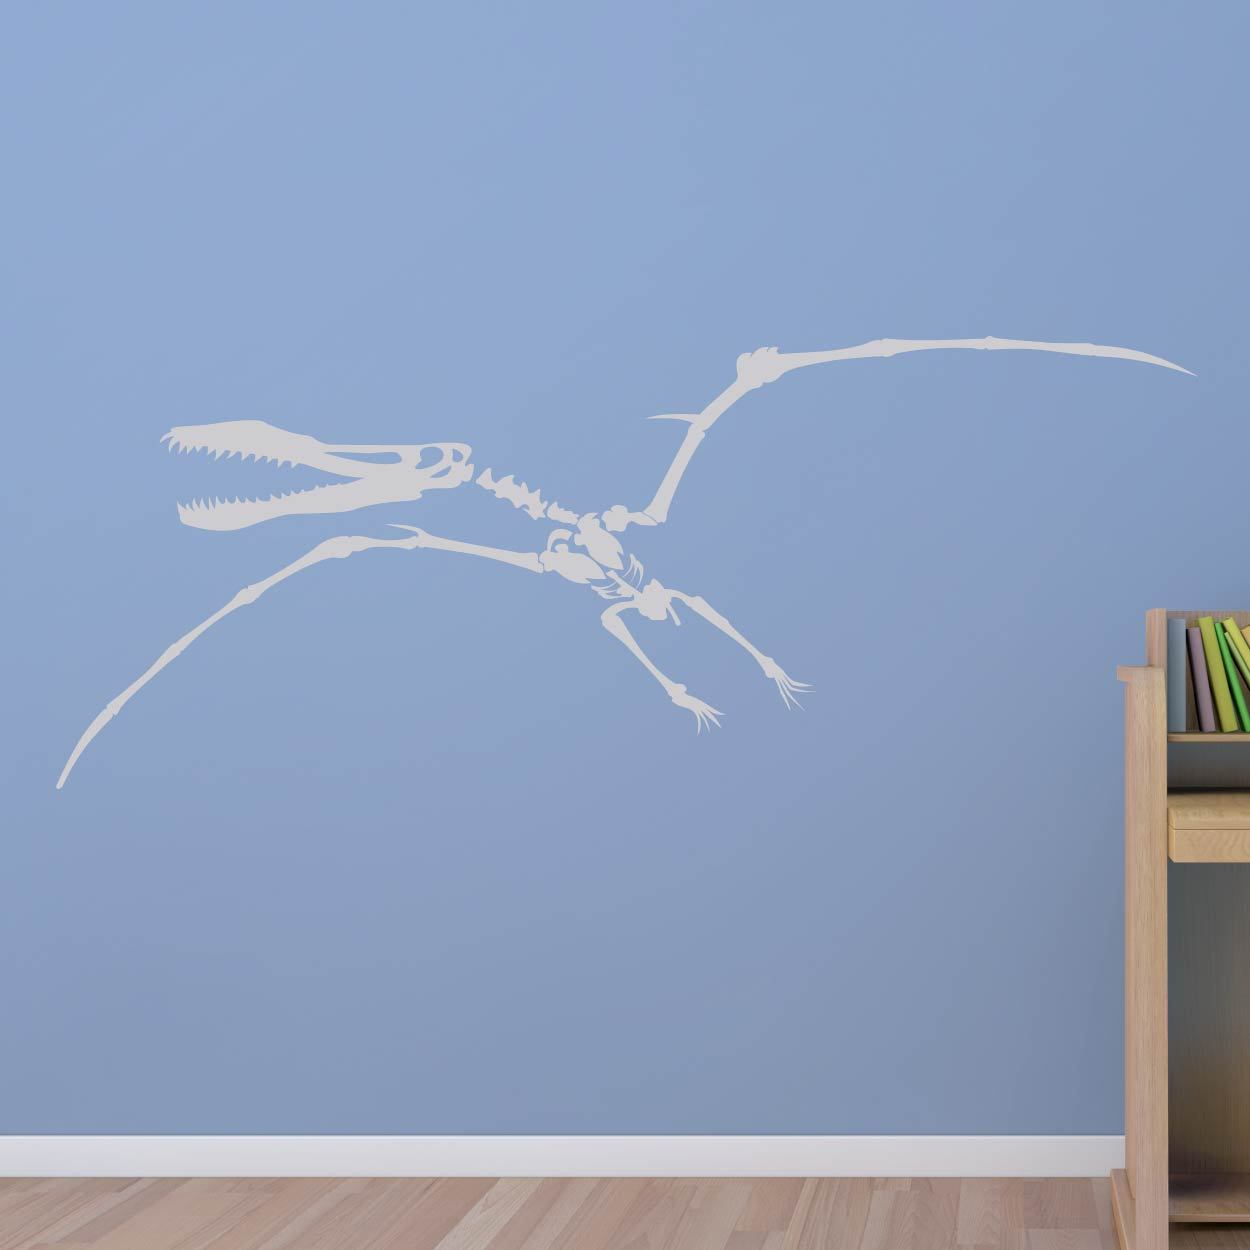 Pterodactyl Skeleton Dinosaur Wall Art Sticker (AS10338) - Apex Stickers